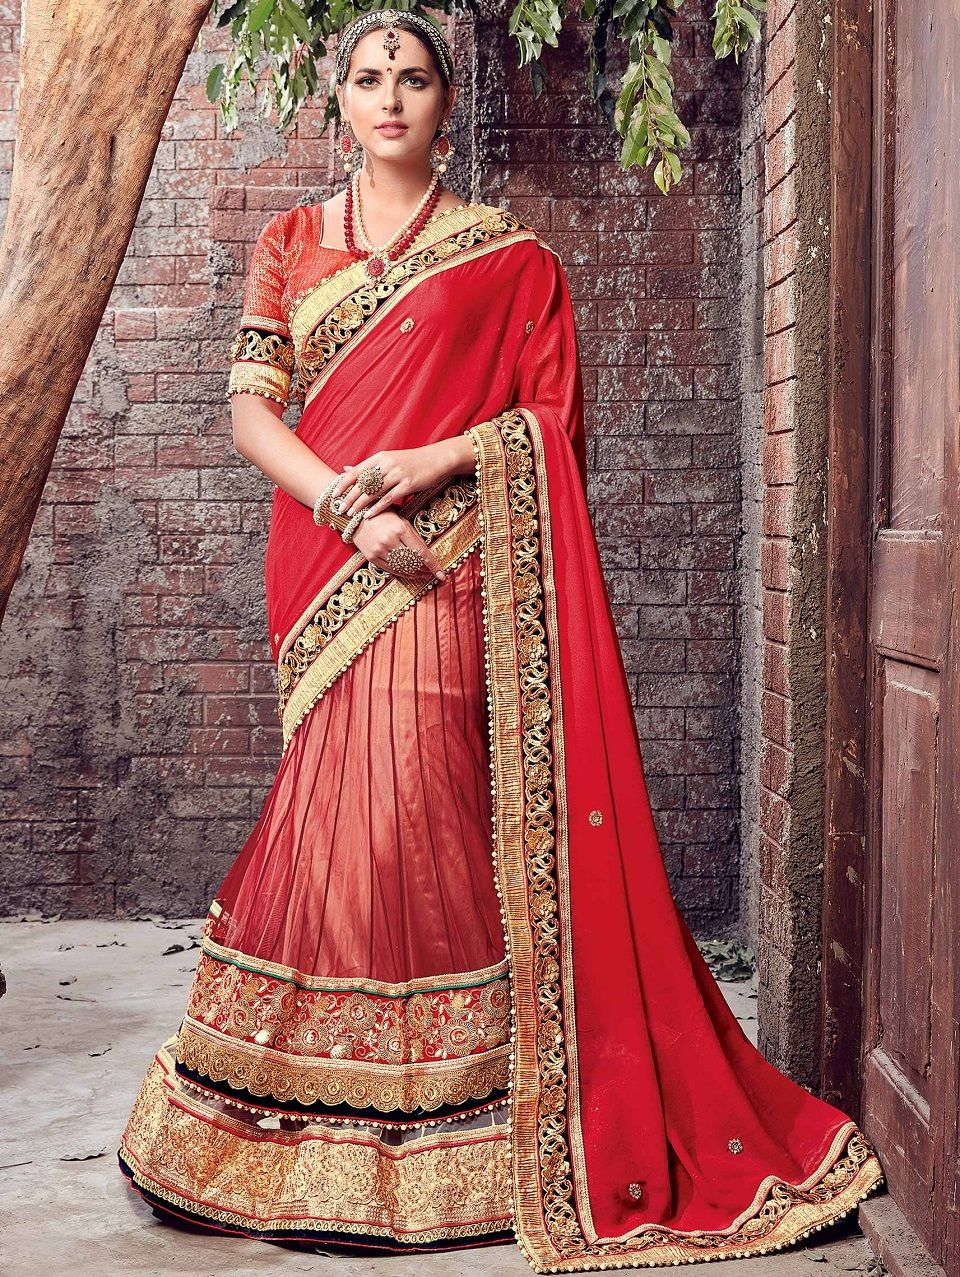 2019 Dress Up Wedding Games In Indian Saree - Cute Dresses for A ...